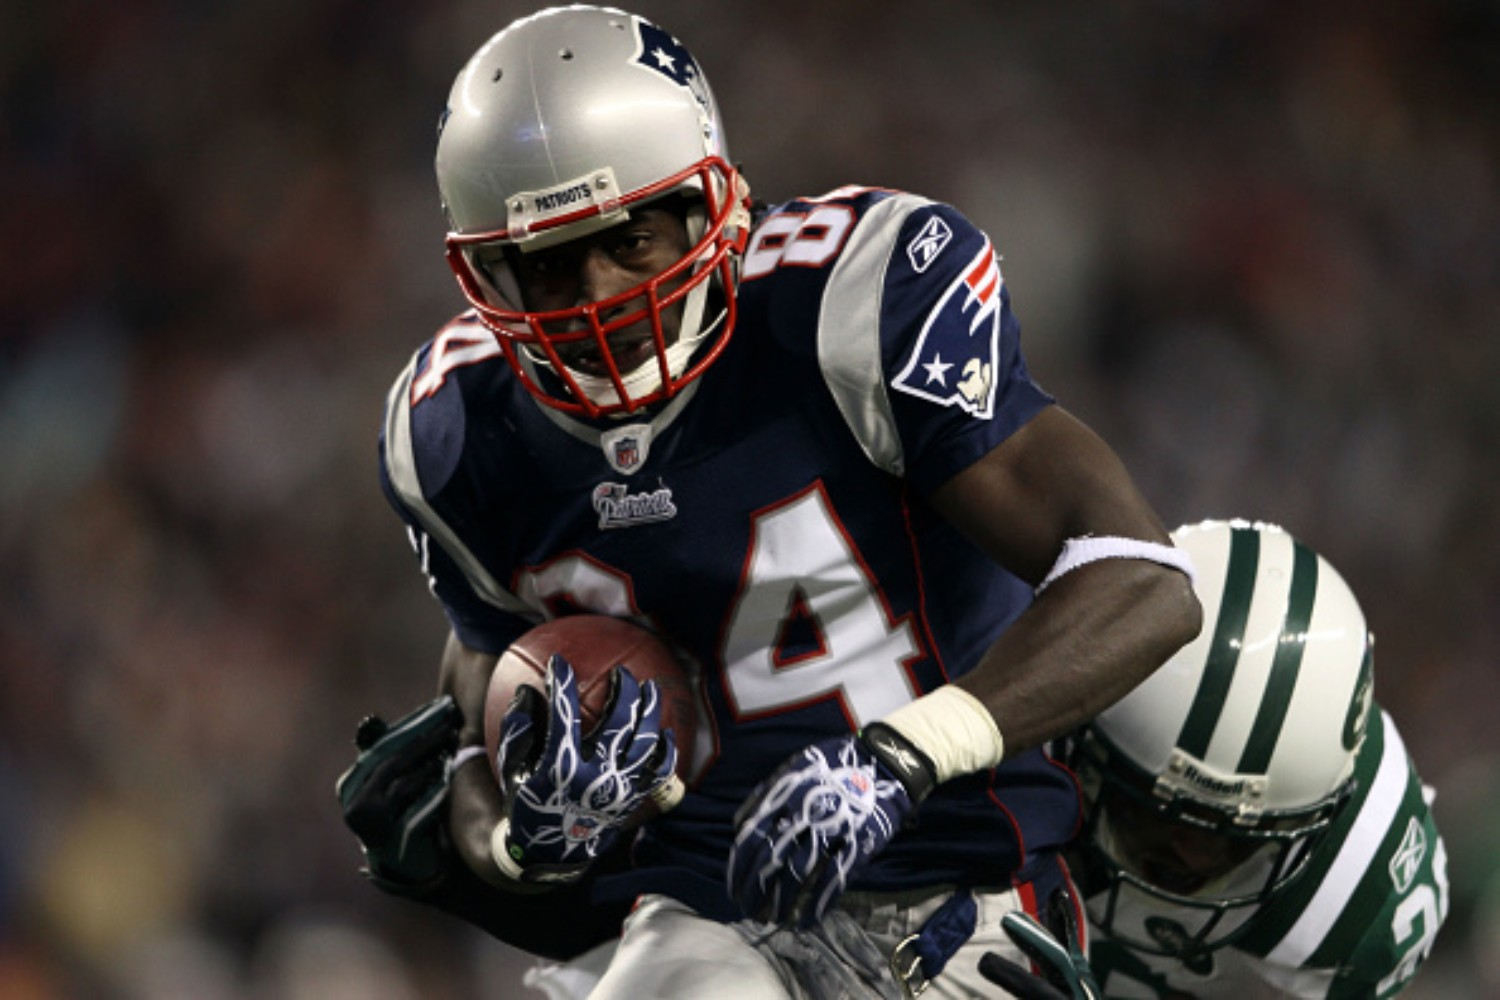 Deion Branch won multiple Super Bowls with the Patriots